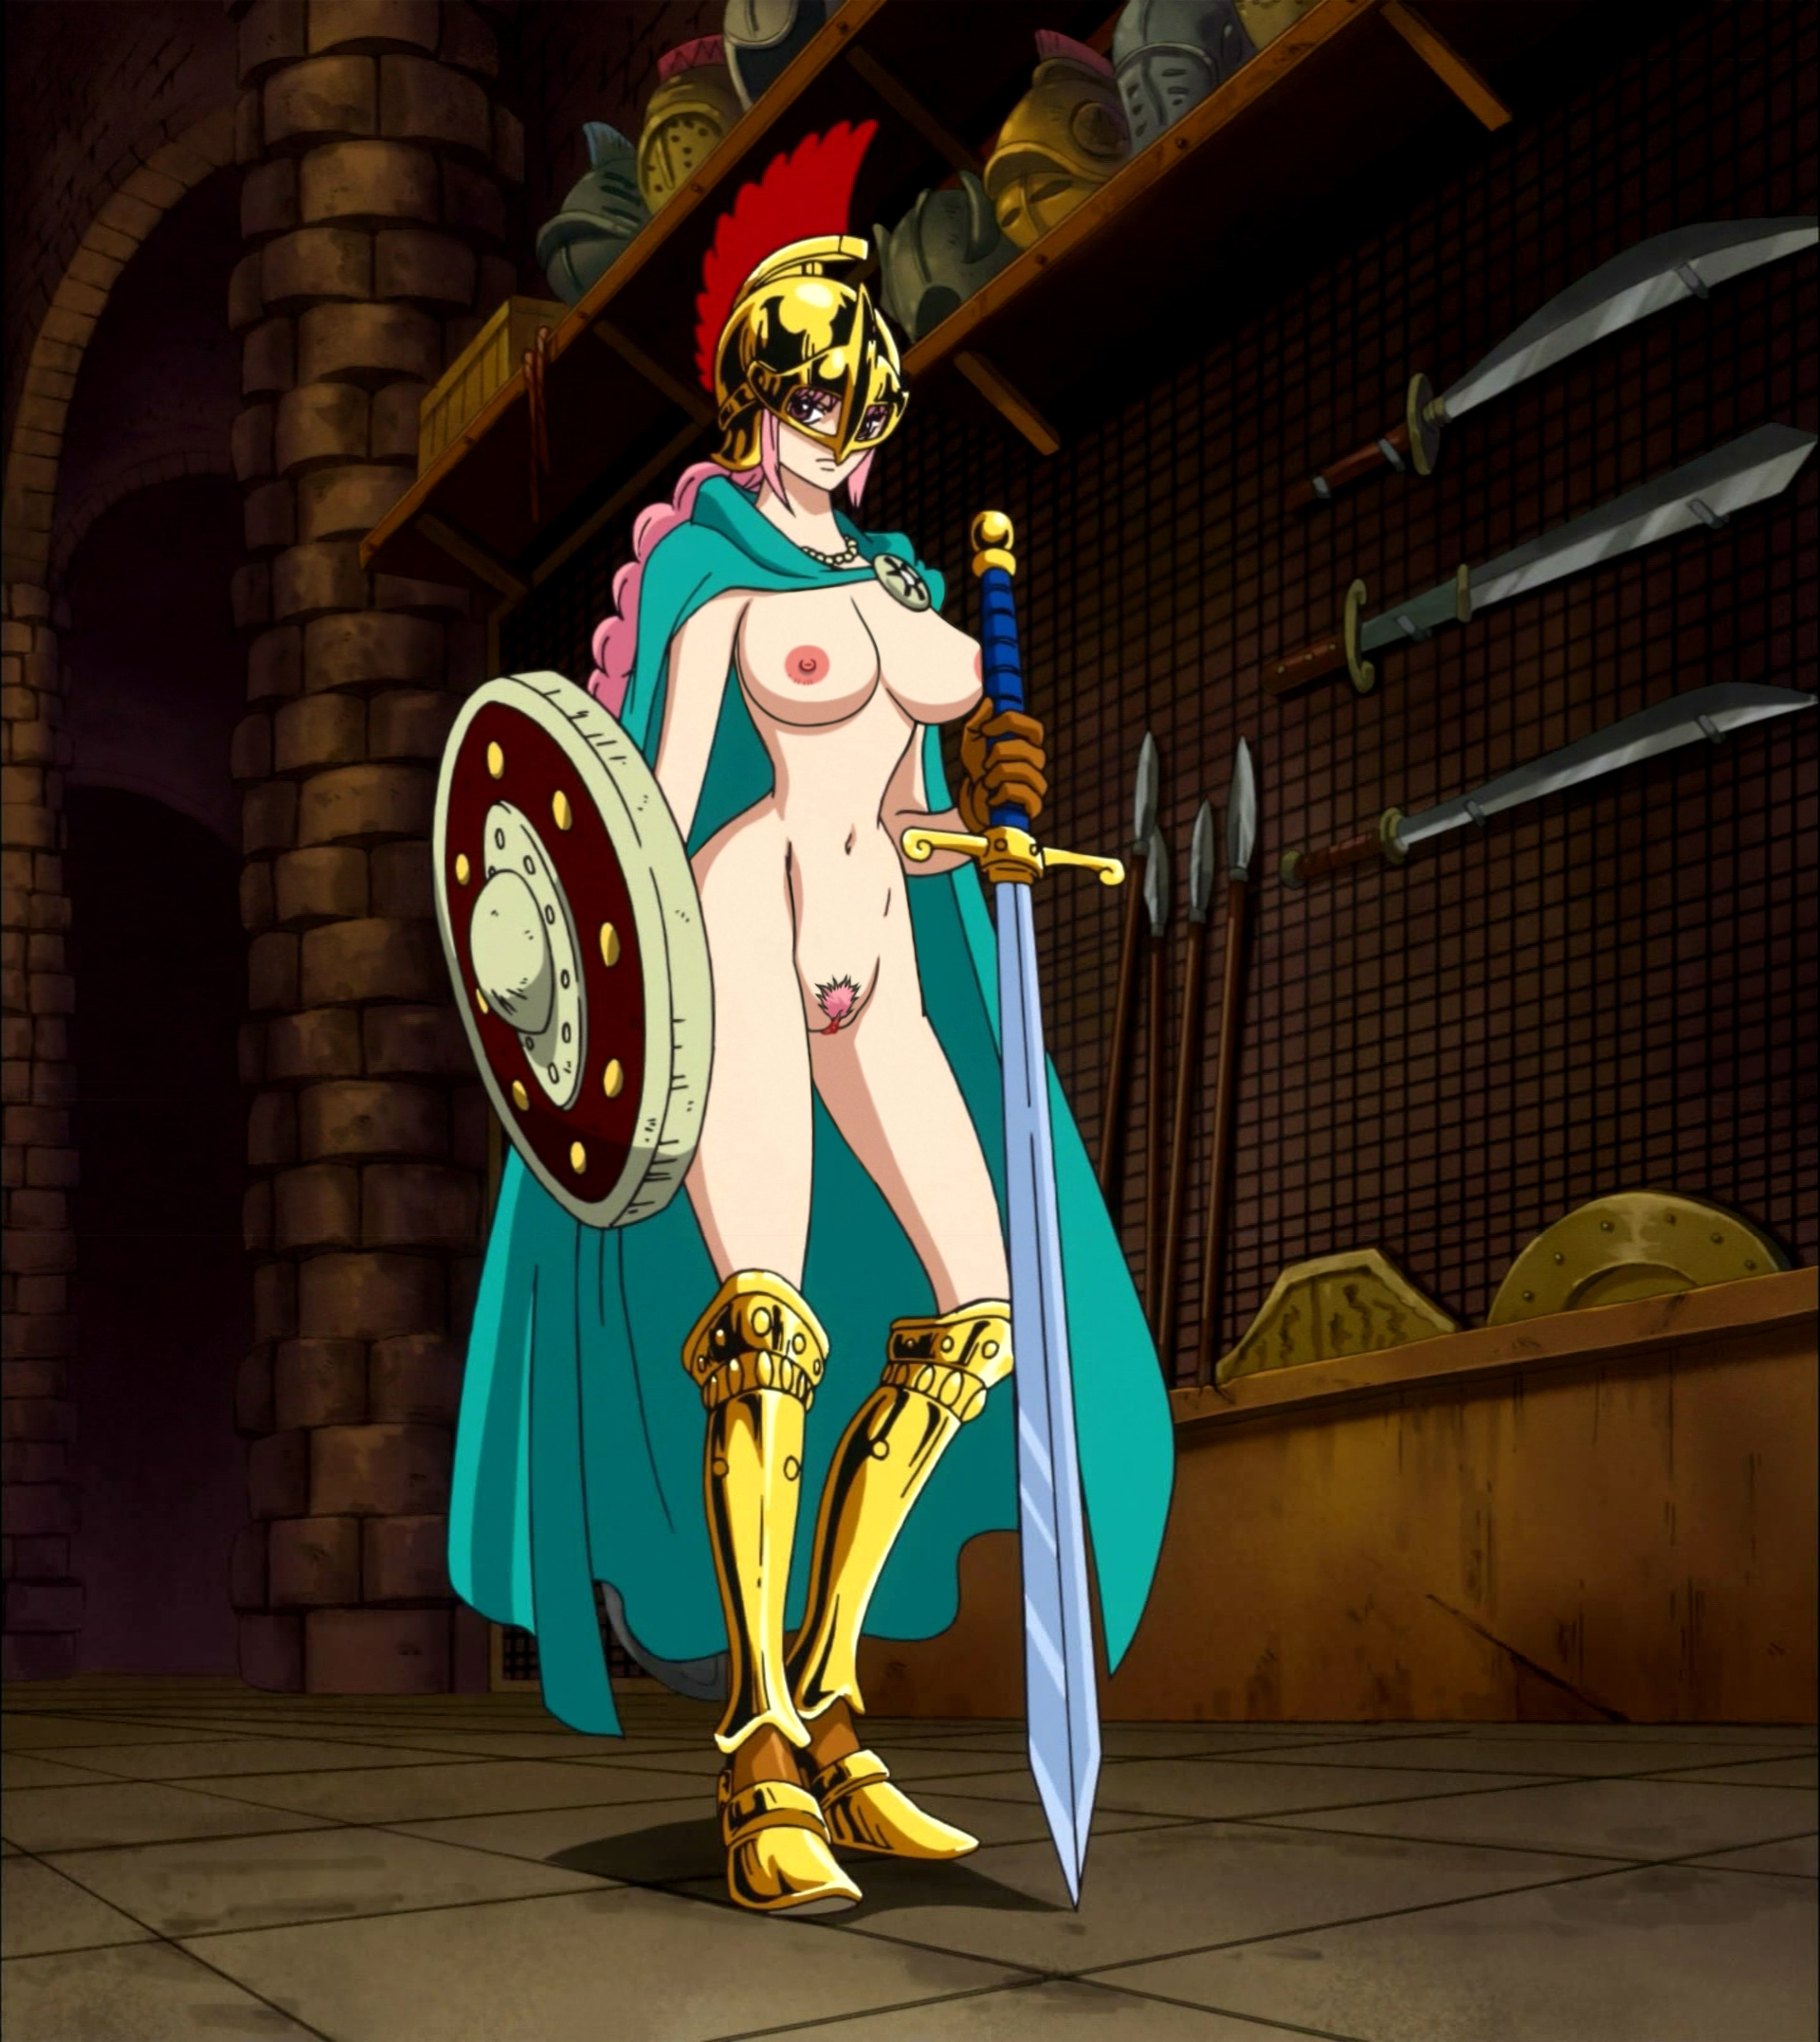 Toon sex pic ##0001301597709 armor braid breasts cape female garou damenade helmet large breasts long hair navel nipples nude nude filter one piece photoshop pink hair pubic hair pussy rebecca (one piece) shield solo standing sword uncensored weapon